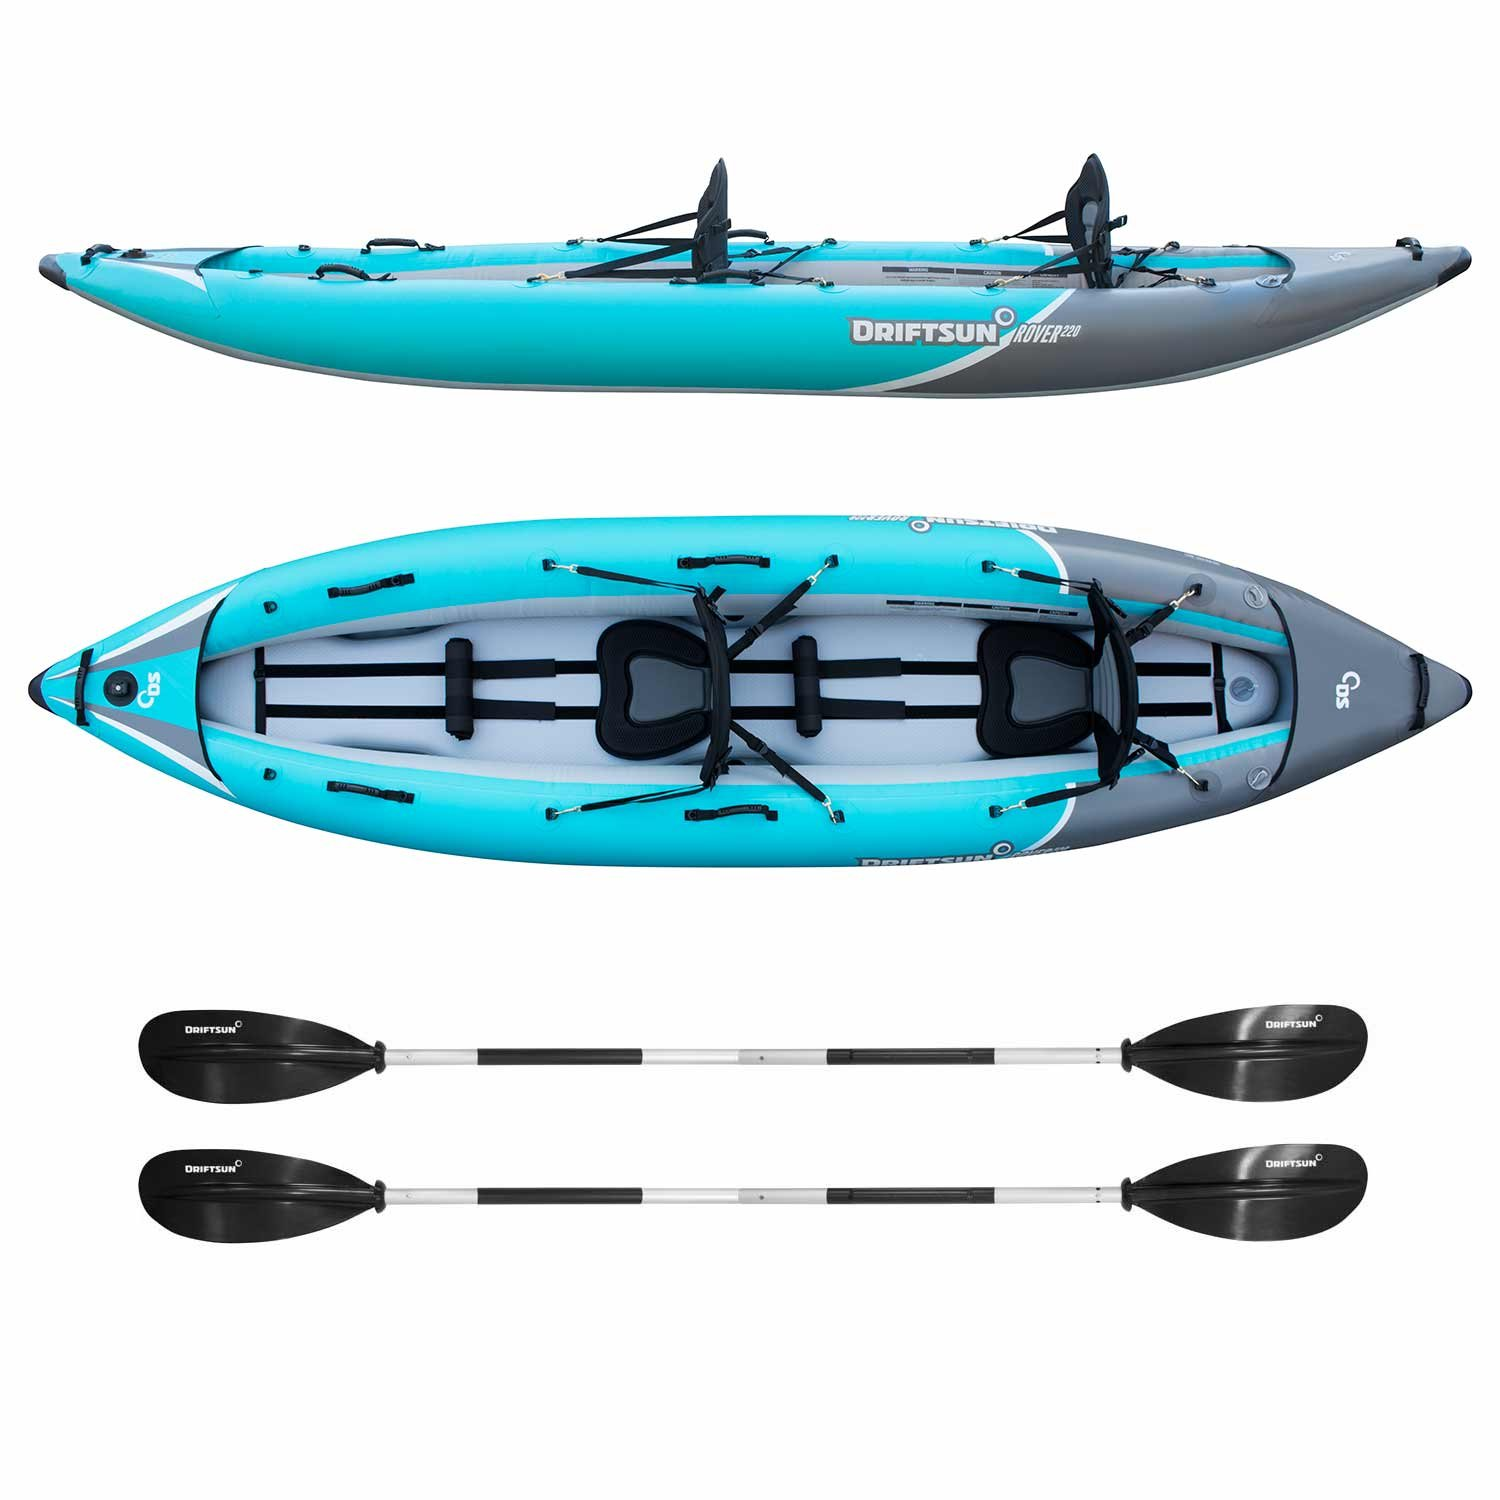 Whitewater Kayaks For Sale >> Driftsun Rover 220 Inflatable Tandem White Water Kayak With High Pressure Floor And Eva Padded Seats With High Back Support Includes Action Cam